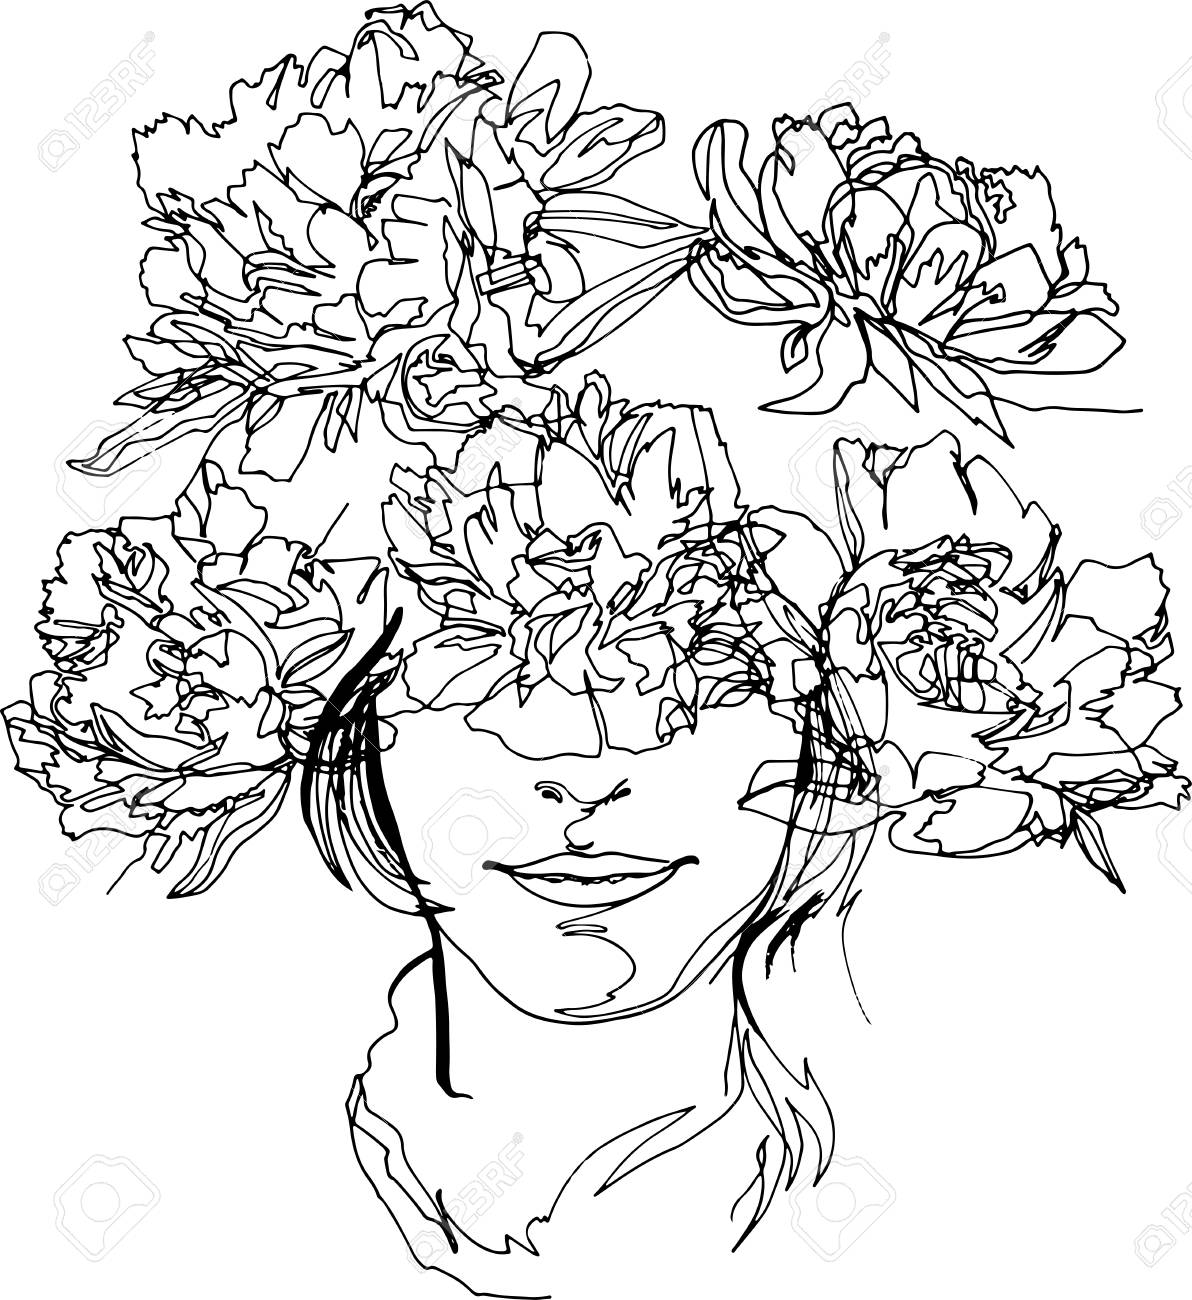 The head of a girl with a wreath of flowers fashion illustration